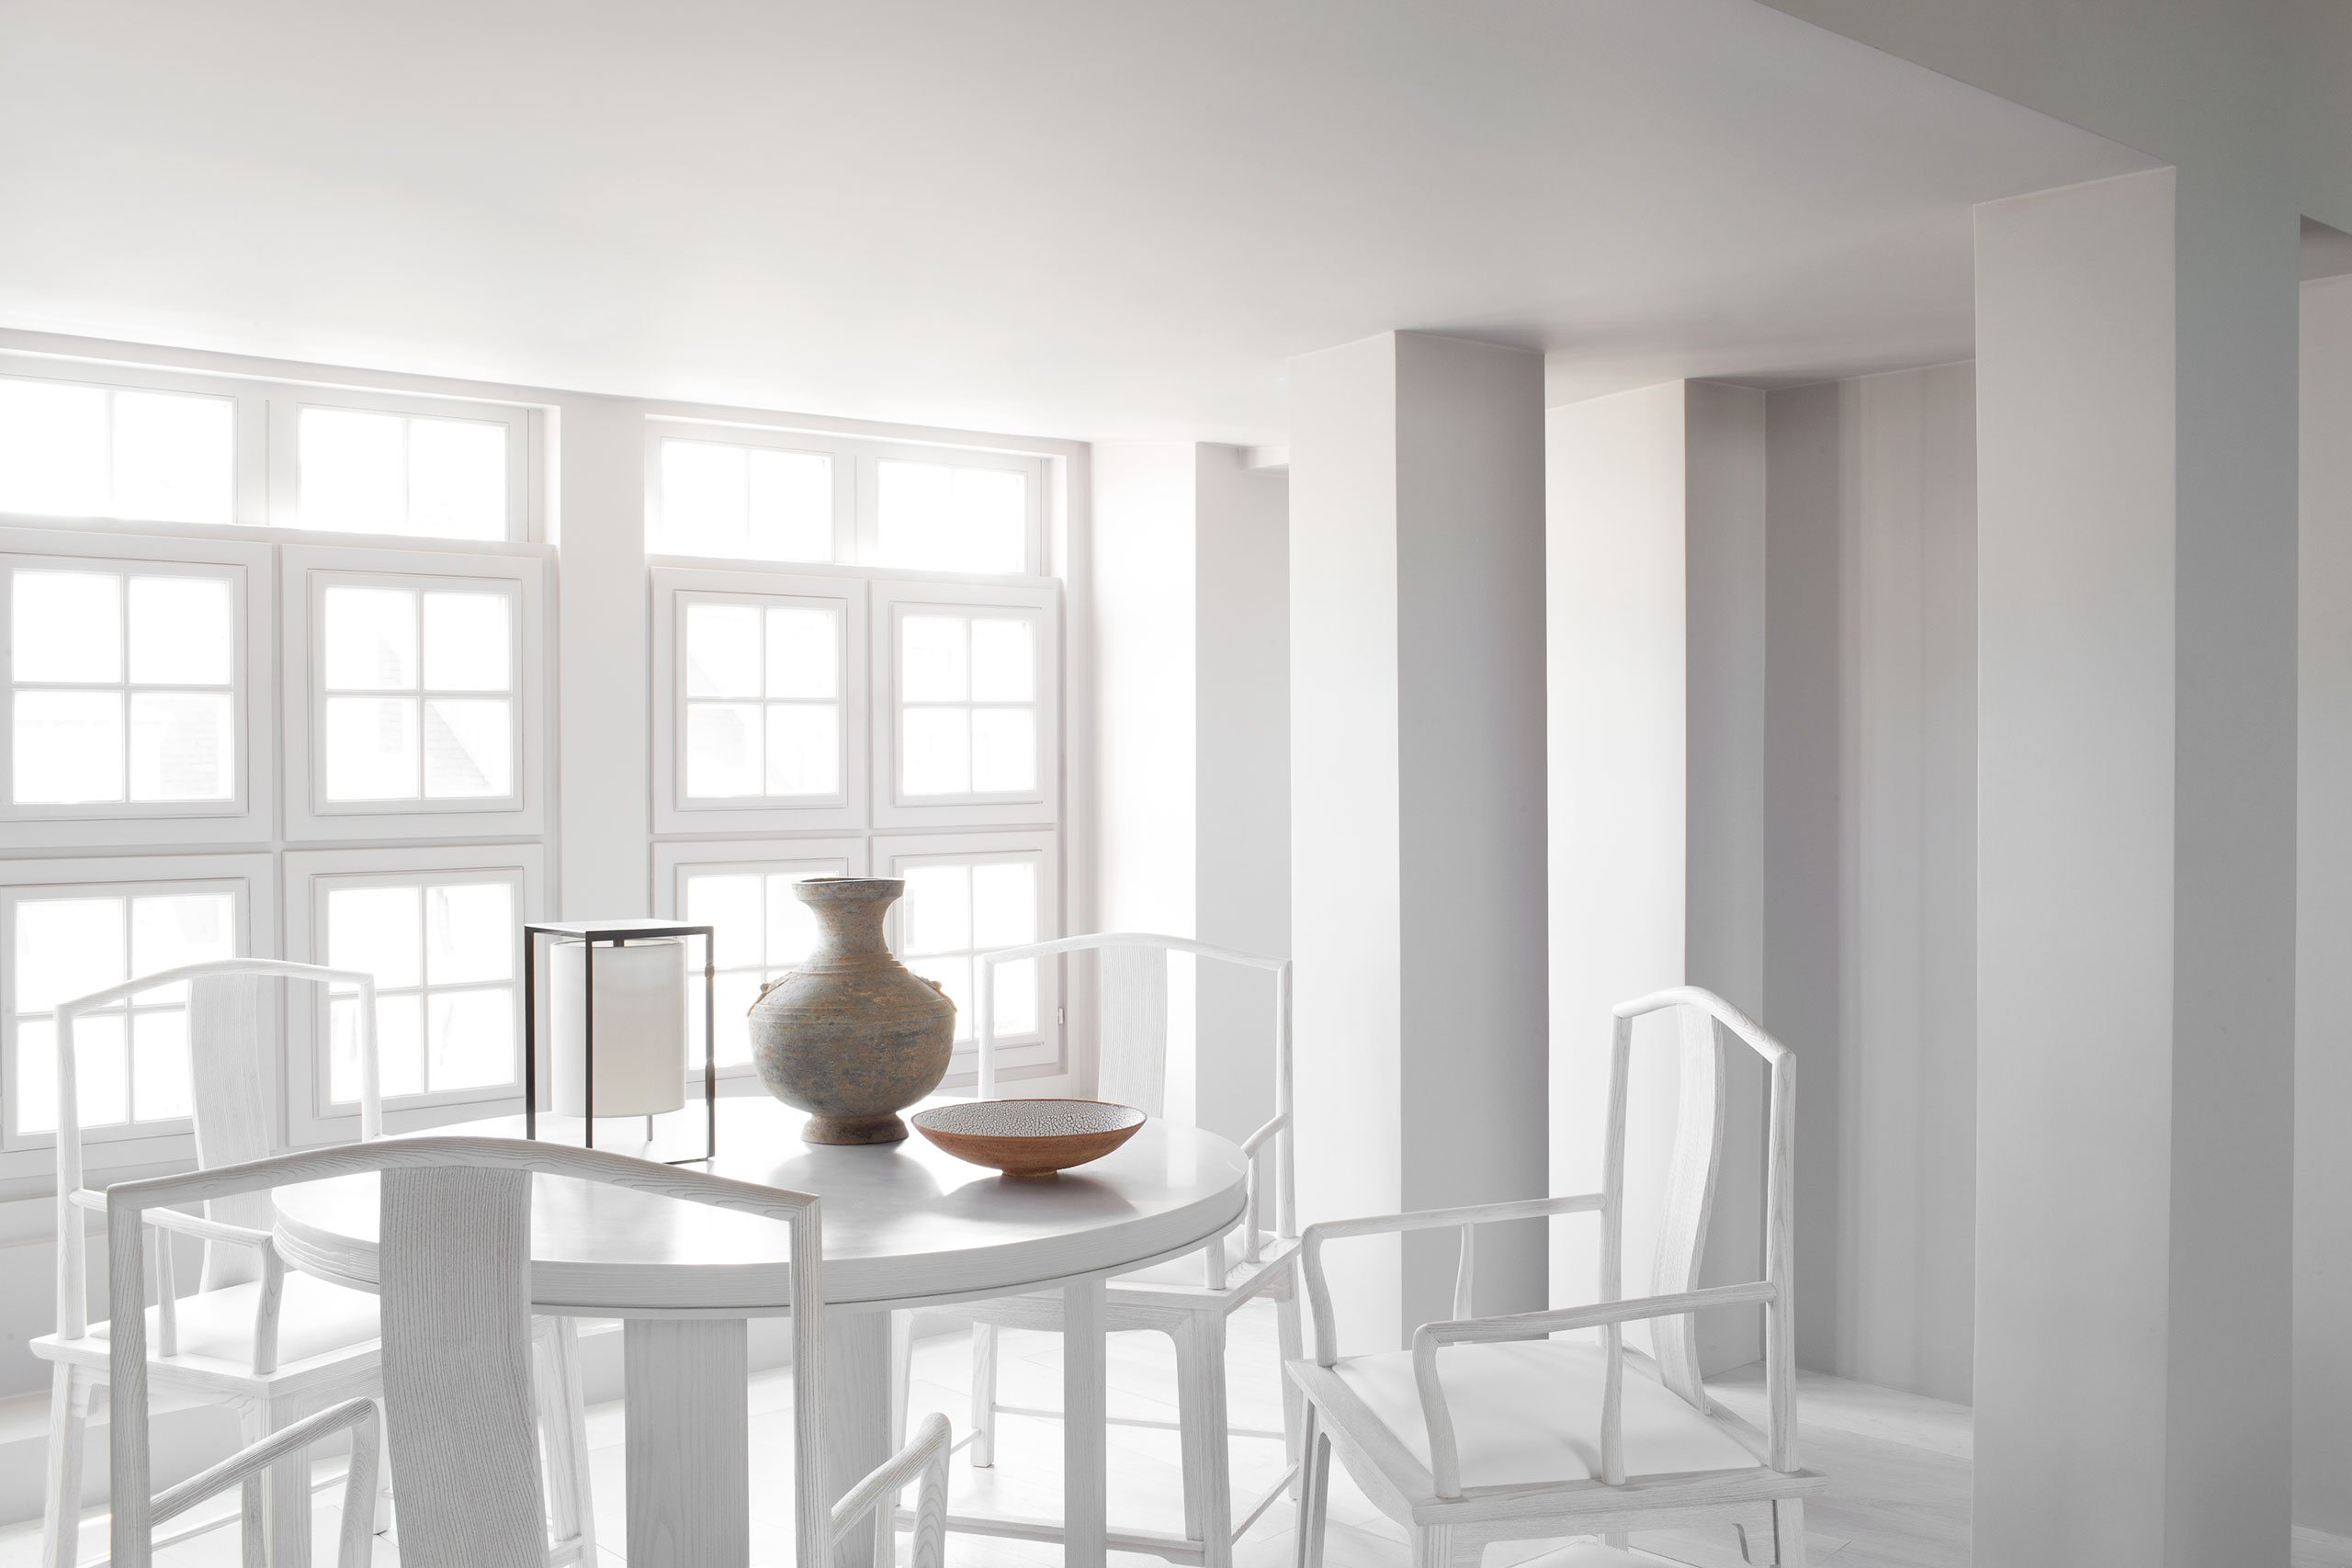 There's a sparate dining space, fully lit with natural light to make it super inviting